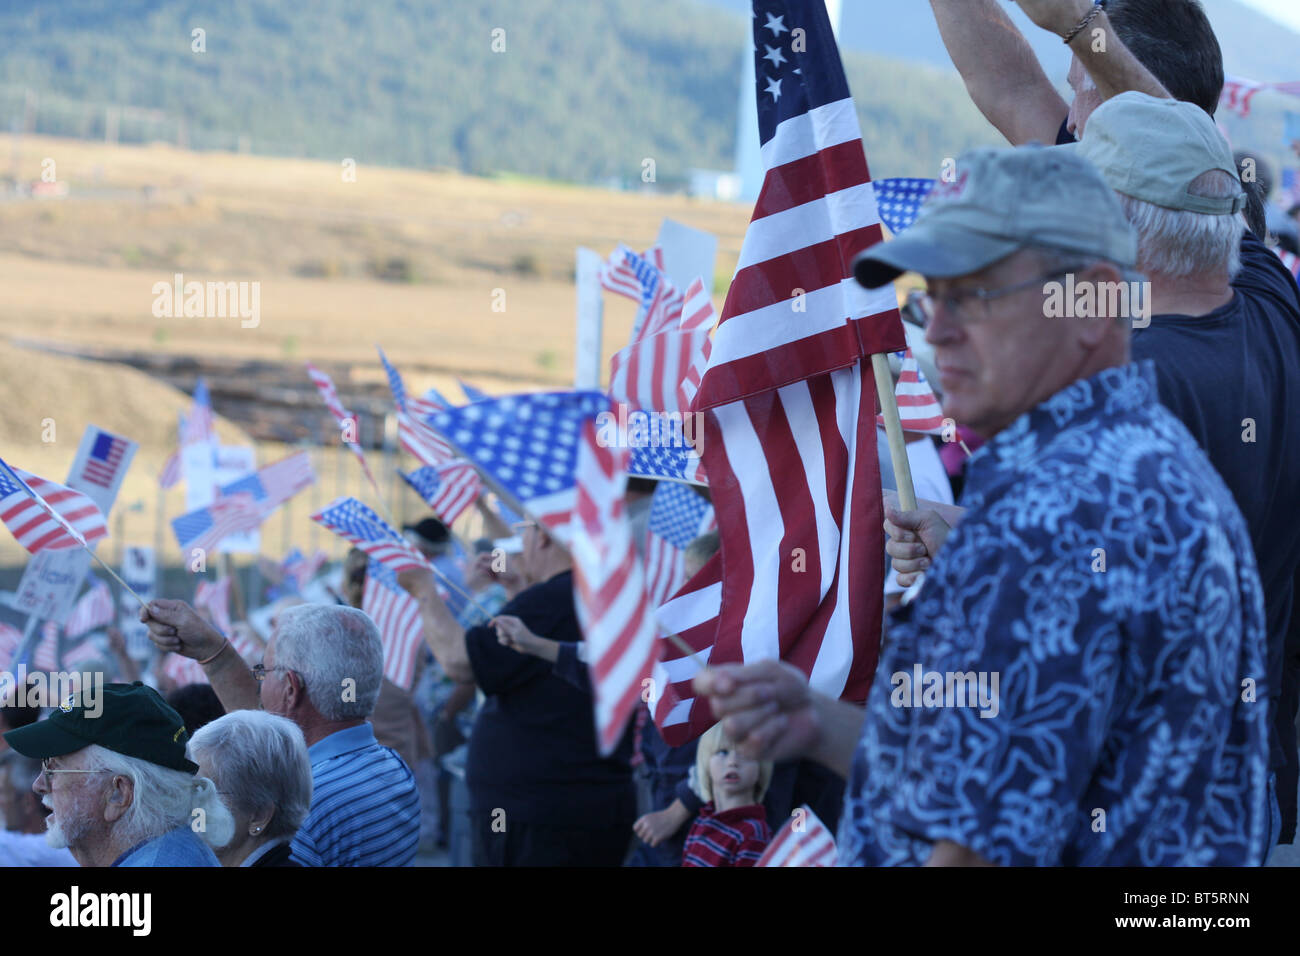 People holding signs and flags, TEA Party rally at Stateline, Idaho, September, 17, 2009. Stock Photo